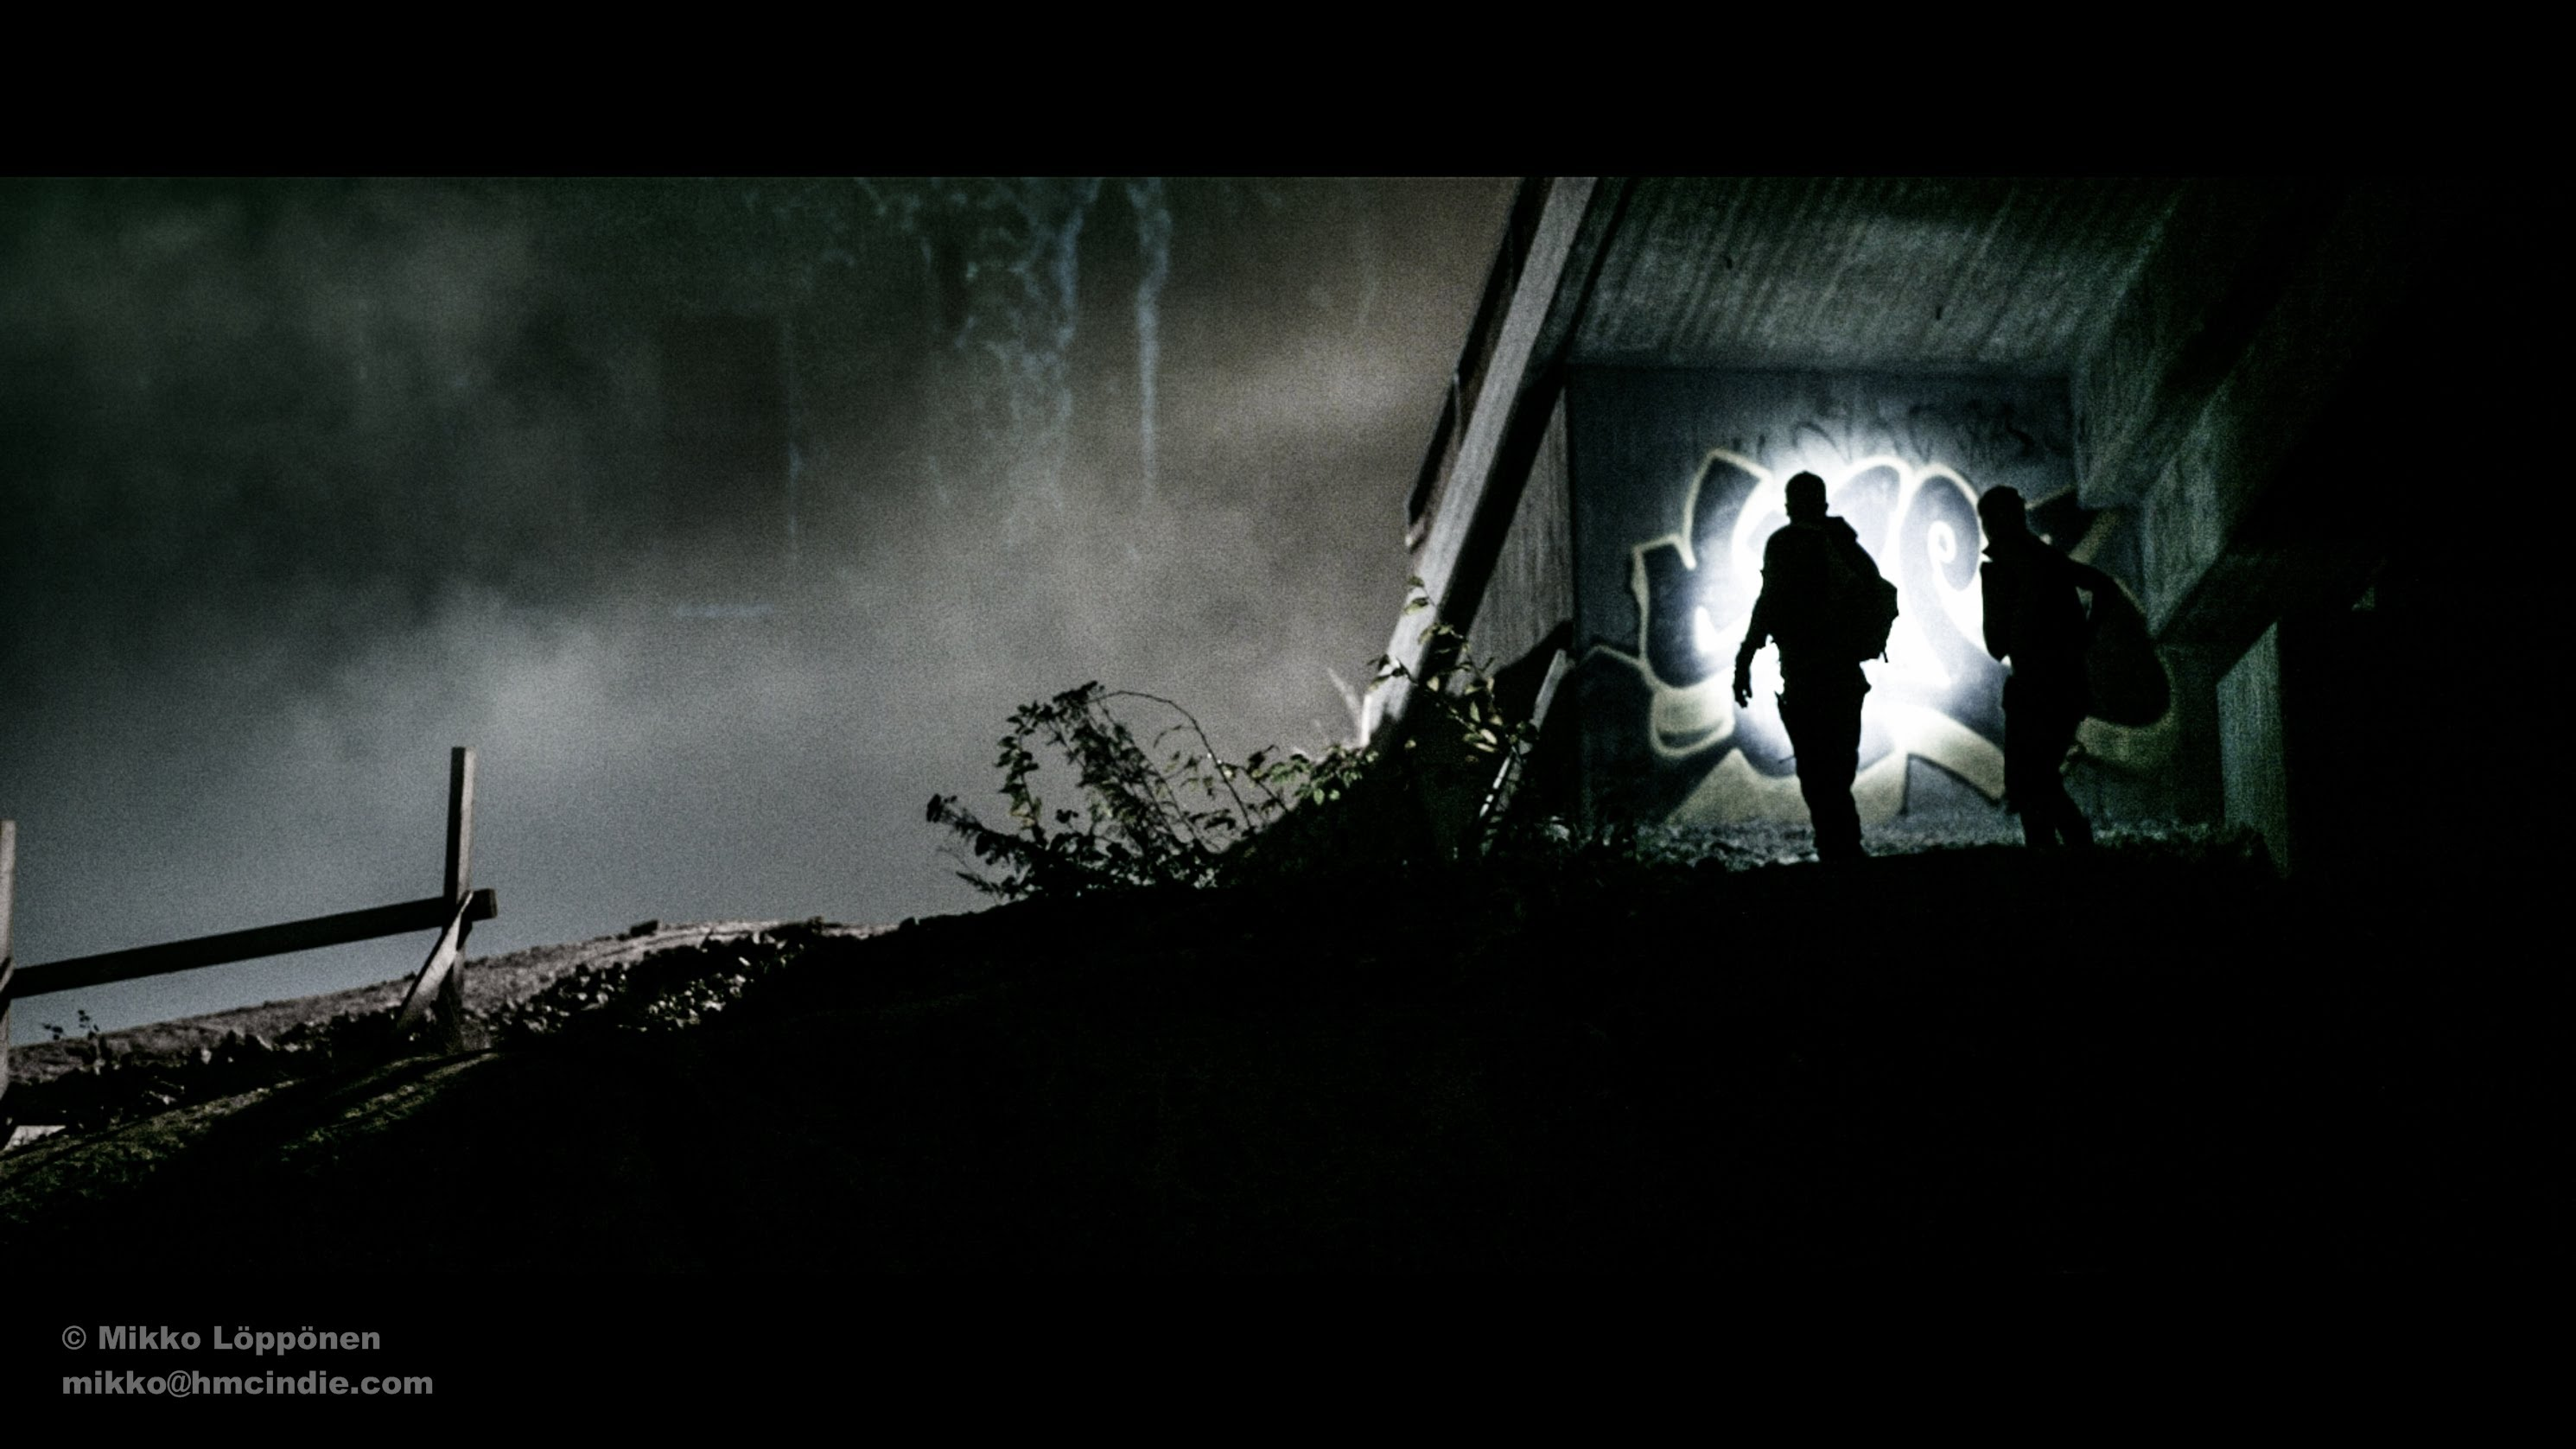 maxresdefault2IMFHNF0 L4ST   ein Last of Us Fanfilm